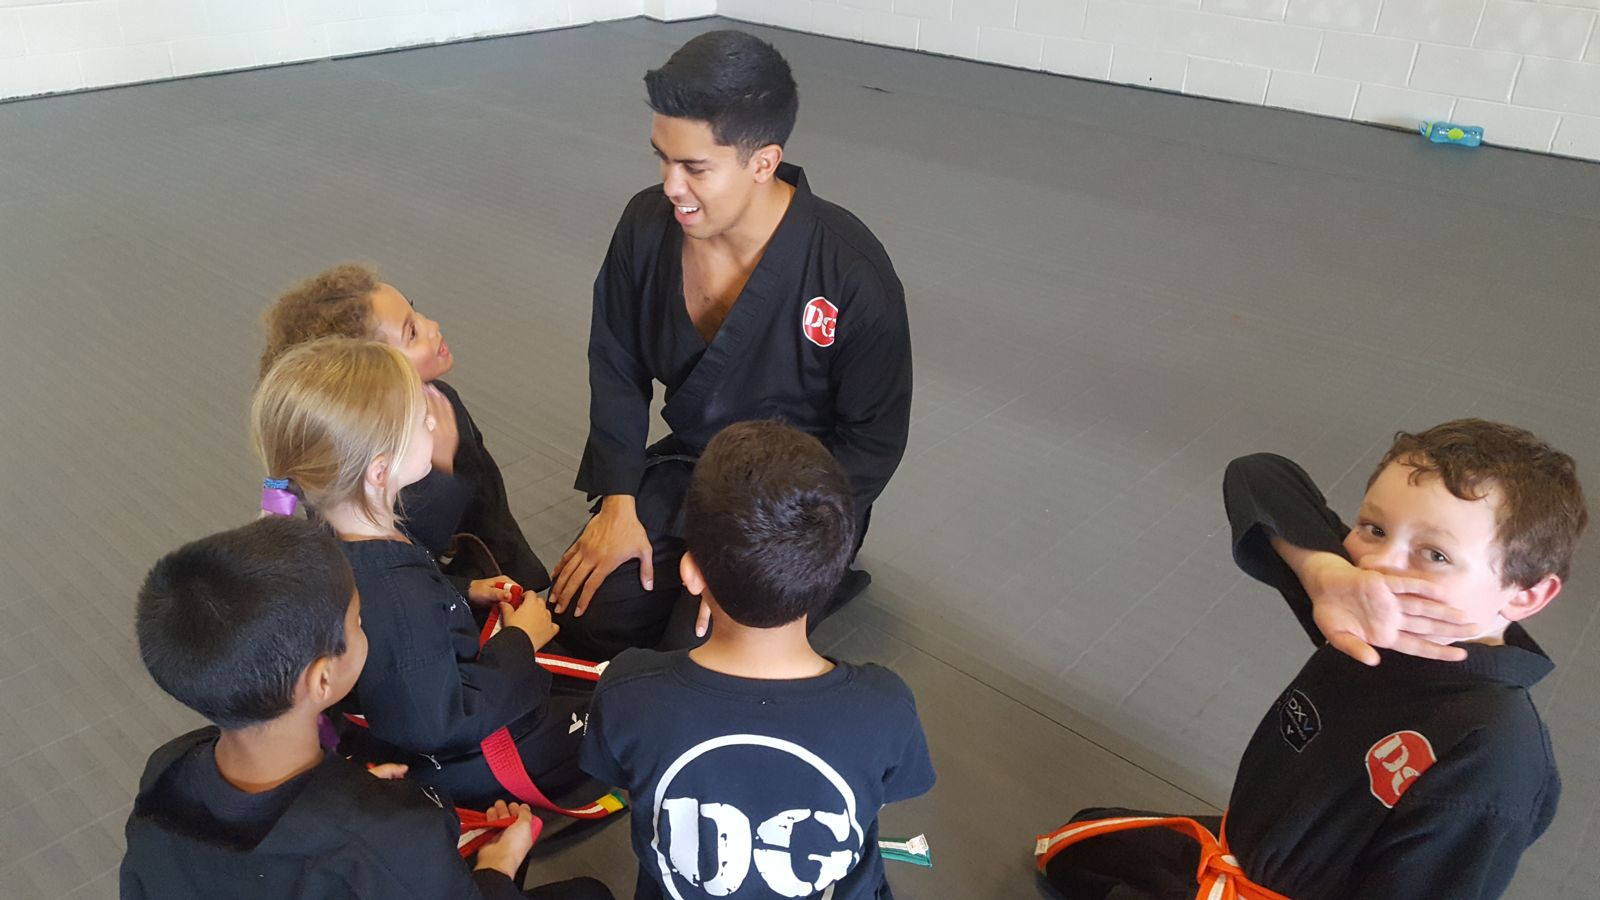 Kids Karate Martial Arts Classes Exton, PA and Berwyn PA - Pablo Camargo